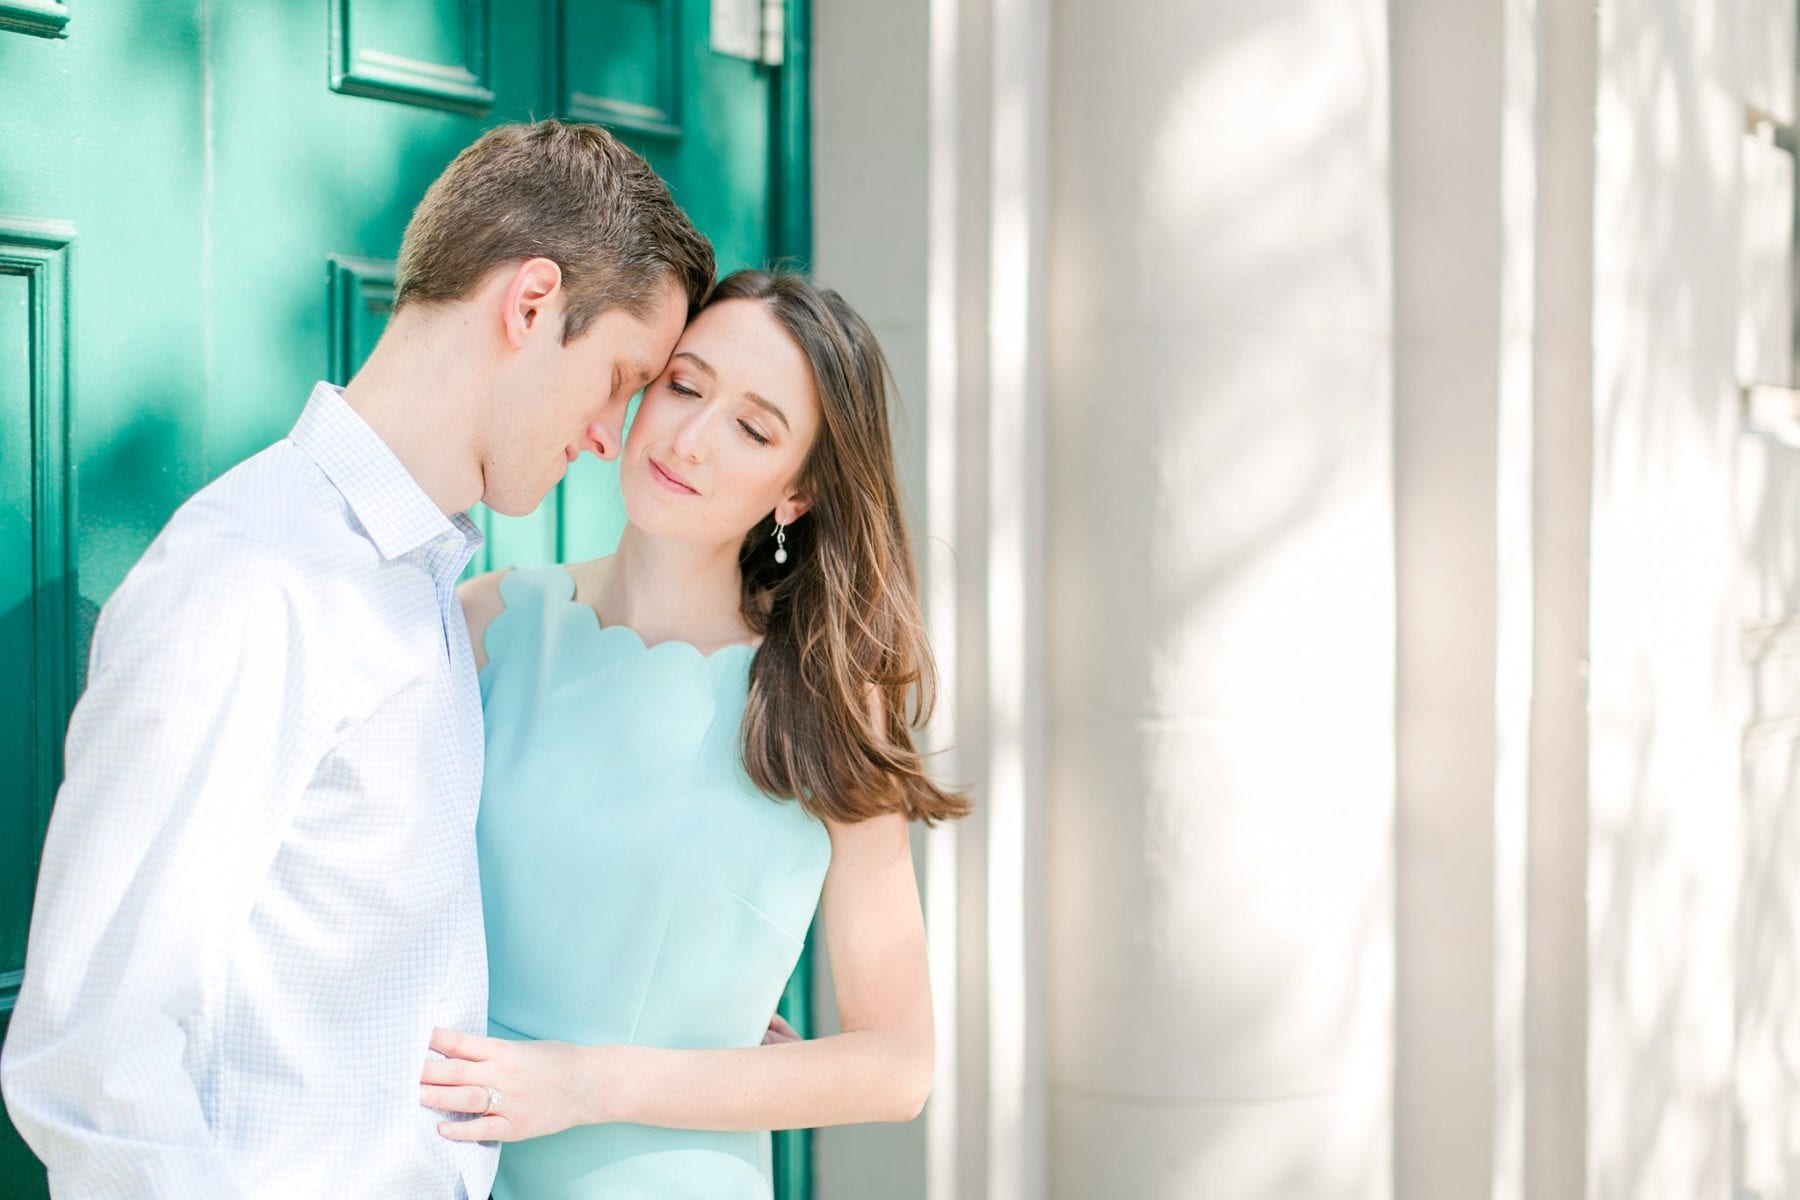 West Village Central Park Engagement Photos NYC Wedding Photographer Megan Kelsey Photography-48.jpg